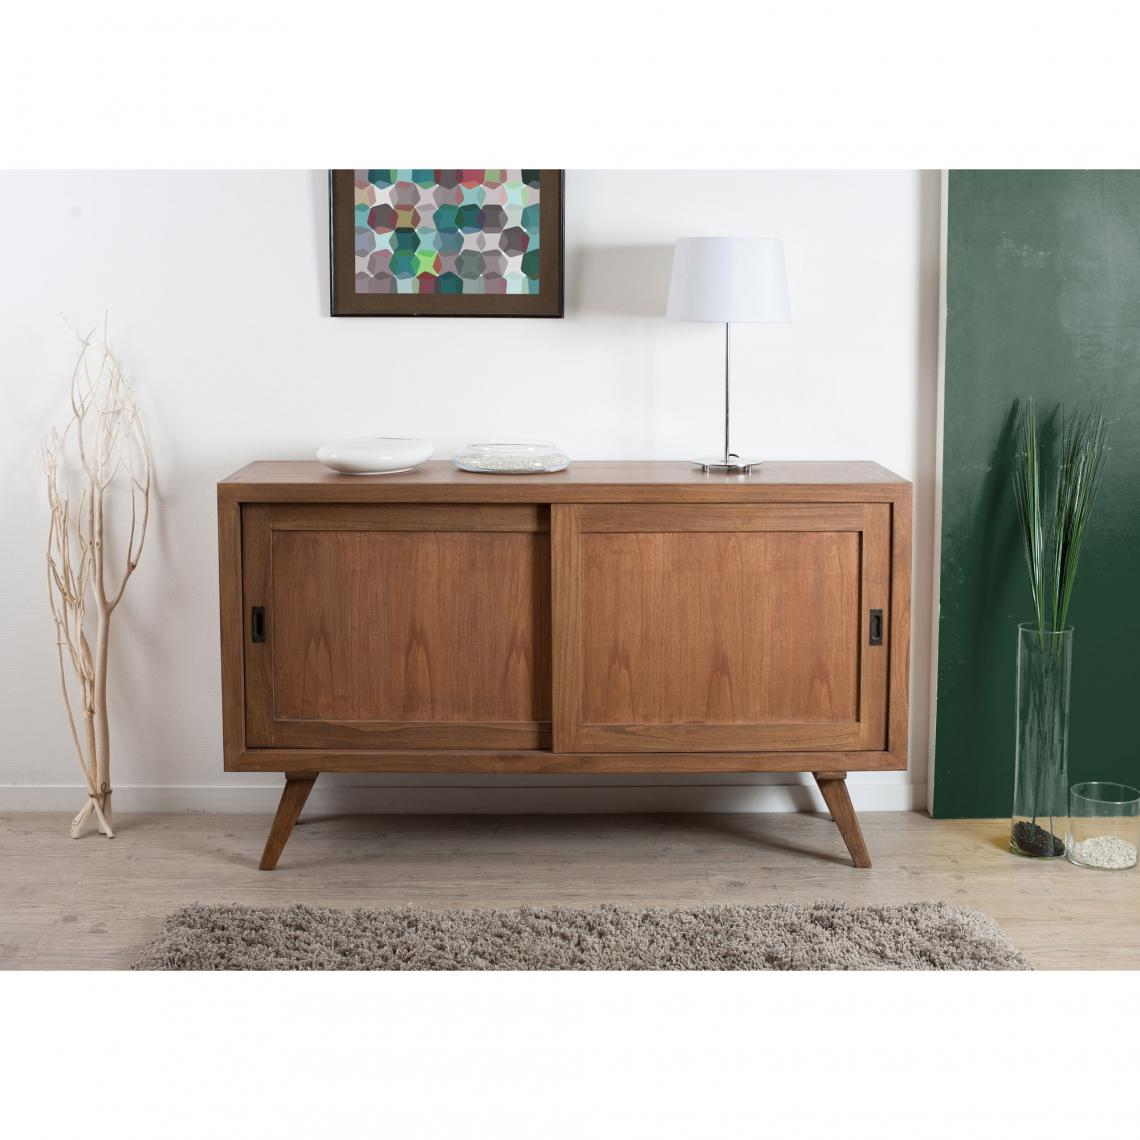 Meuble Portes Coulissantes Buffet 2 Portes Coulissantes Style Scandinave Cannelle 3 Suisses